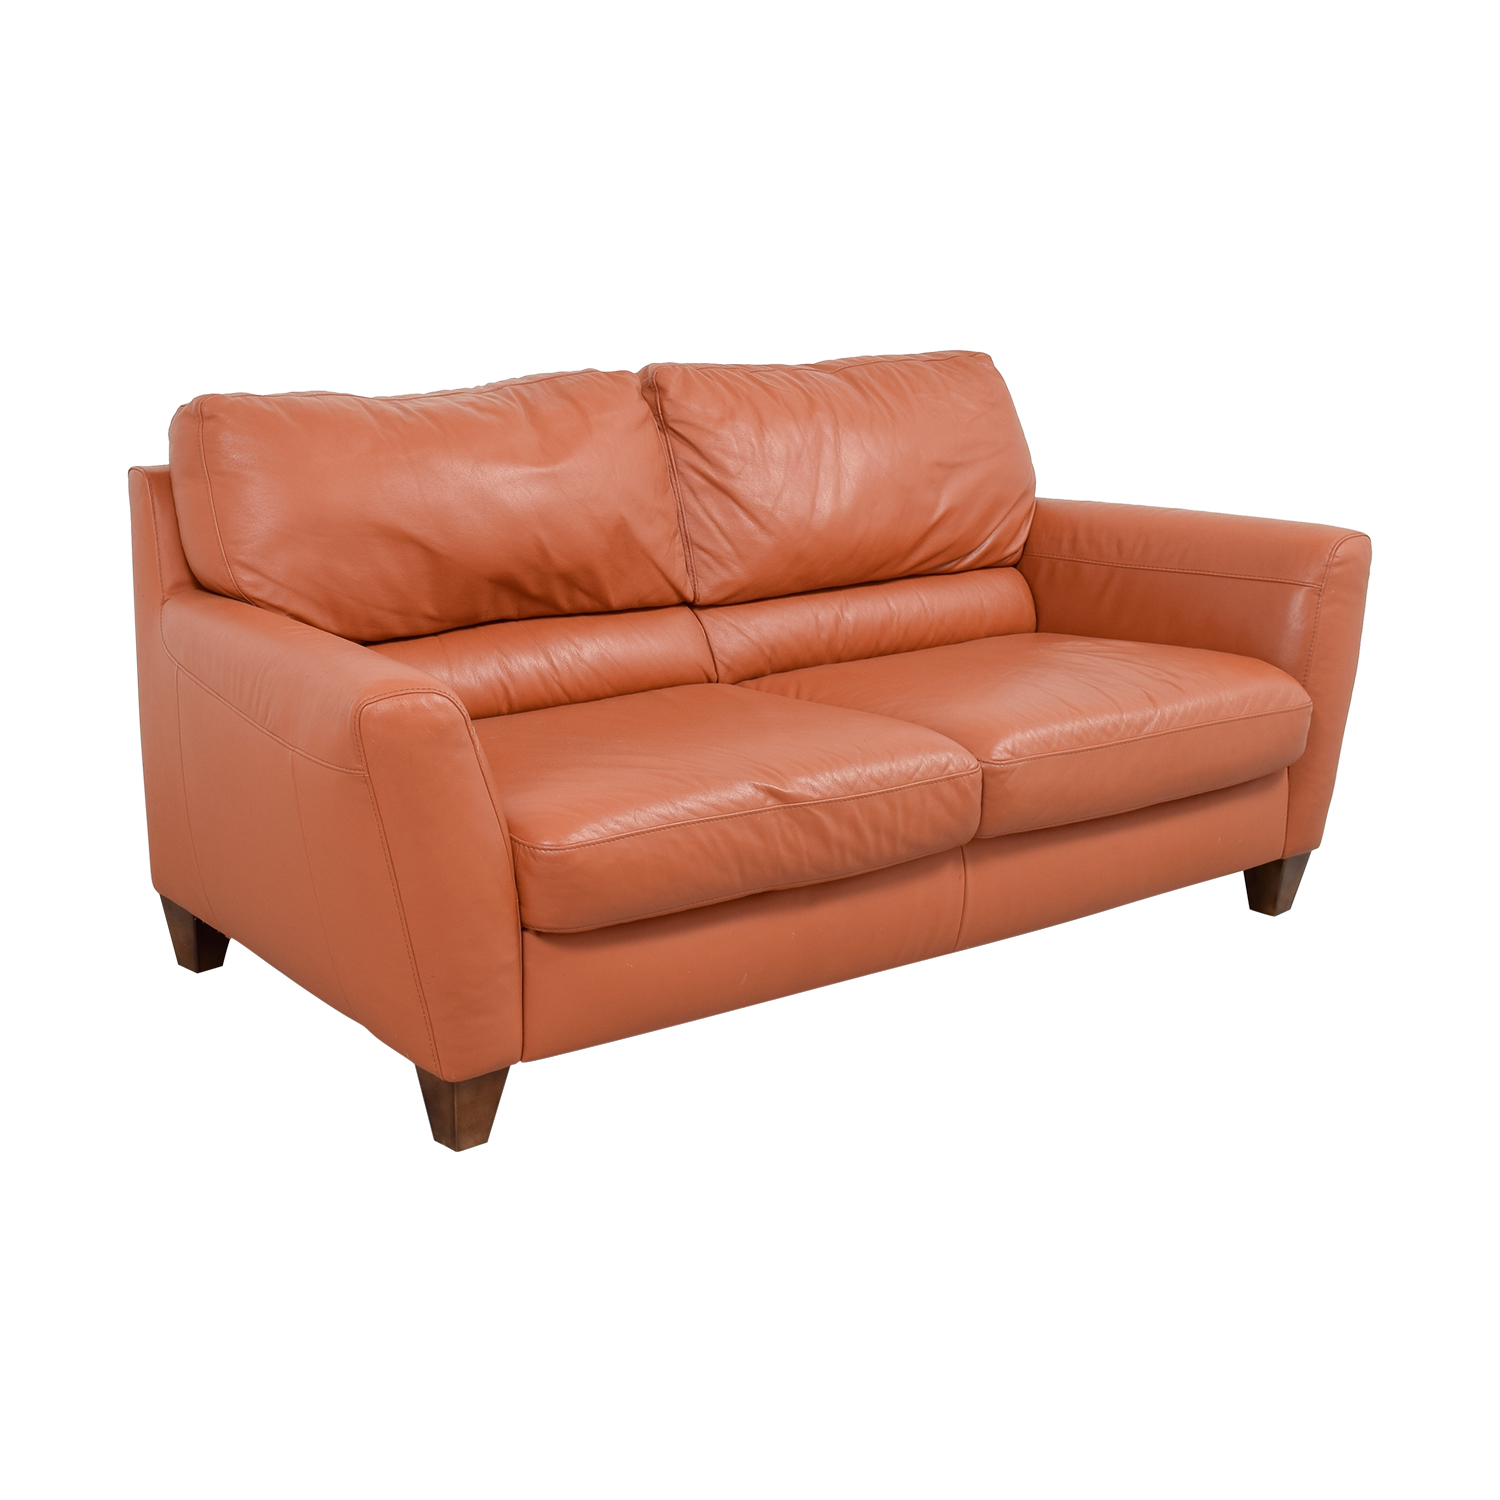 76 Off Natuzzi Natuzzi Amalfi Burnt Orange Leather Sofa